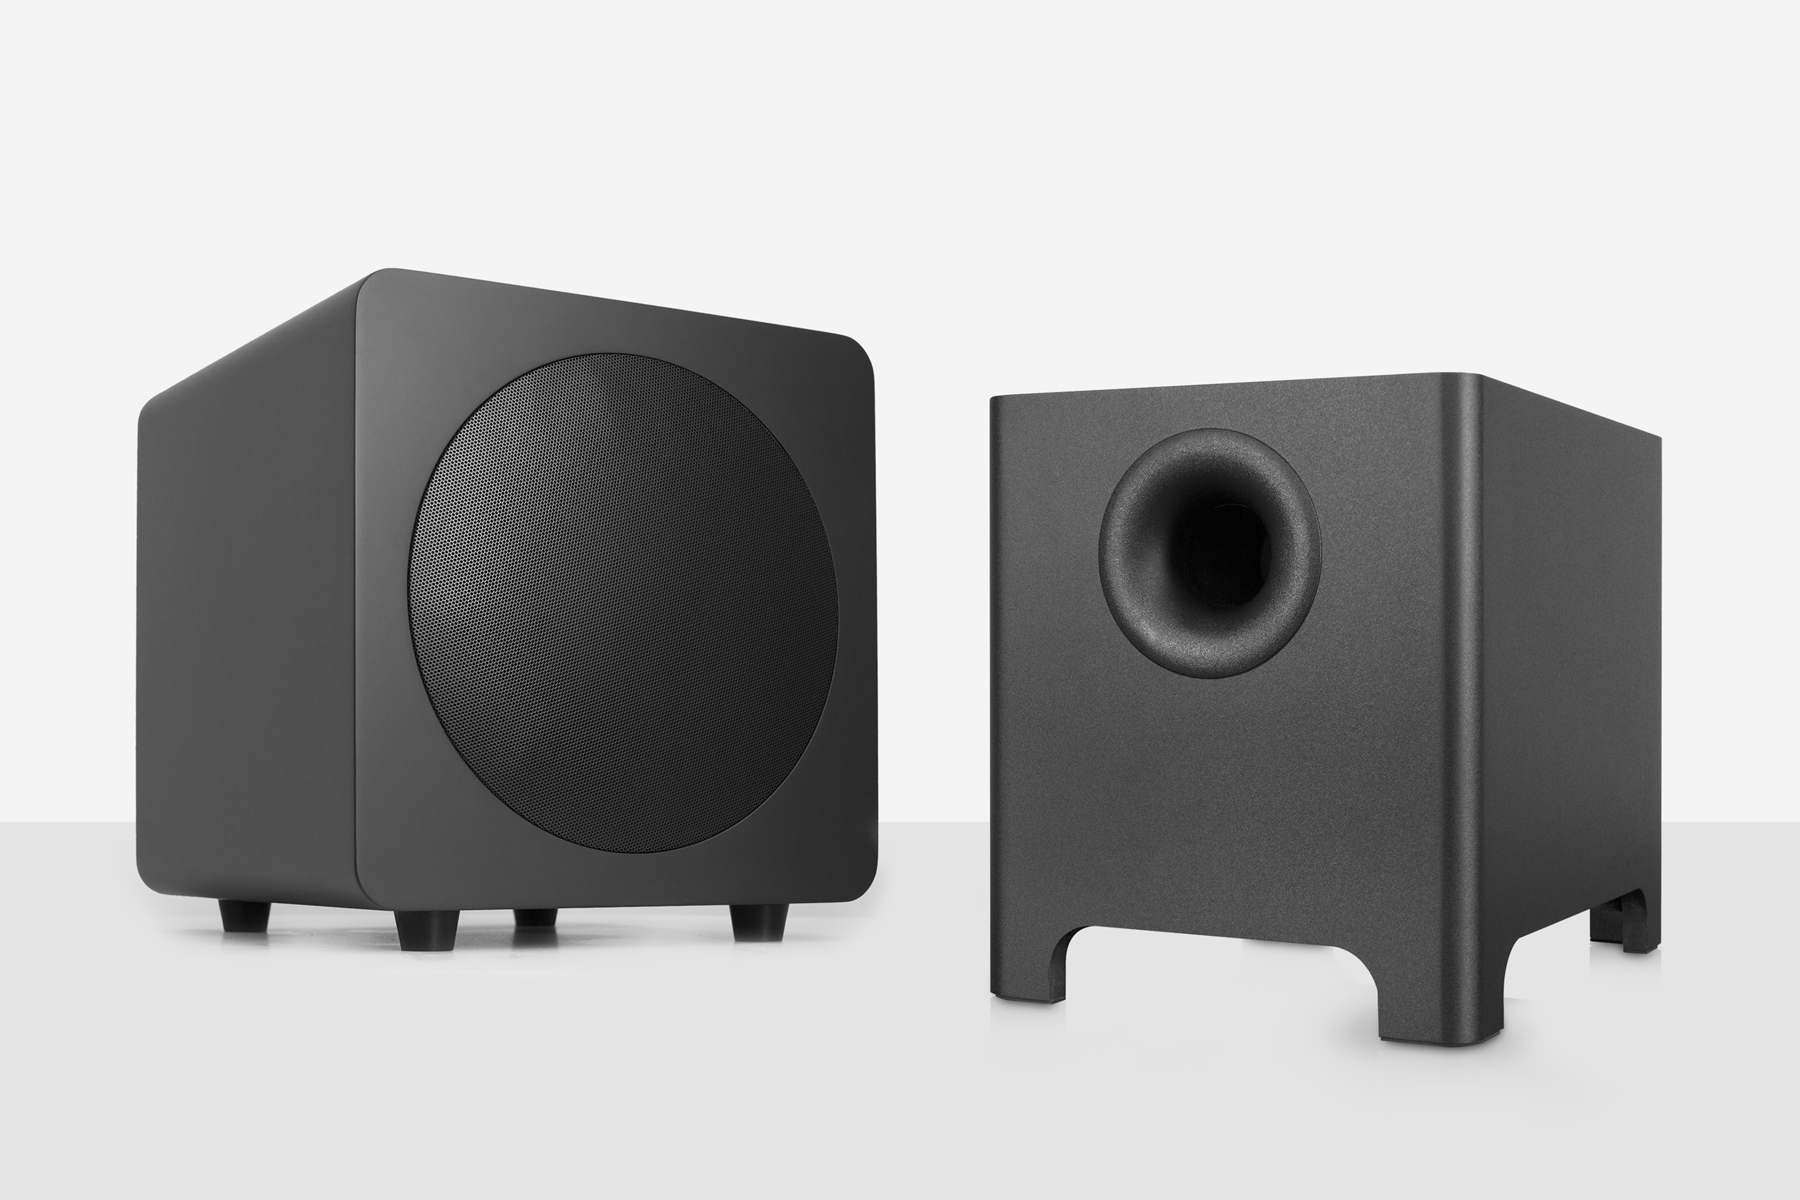 SUB8 next to a YURI subwoofer. Ported versus sealed subwoofers